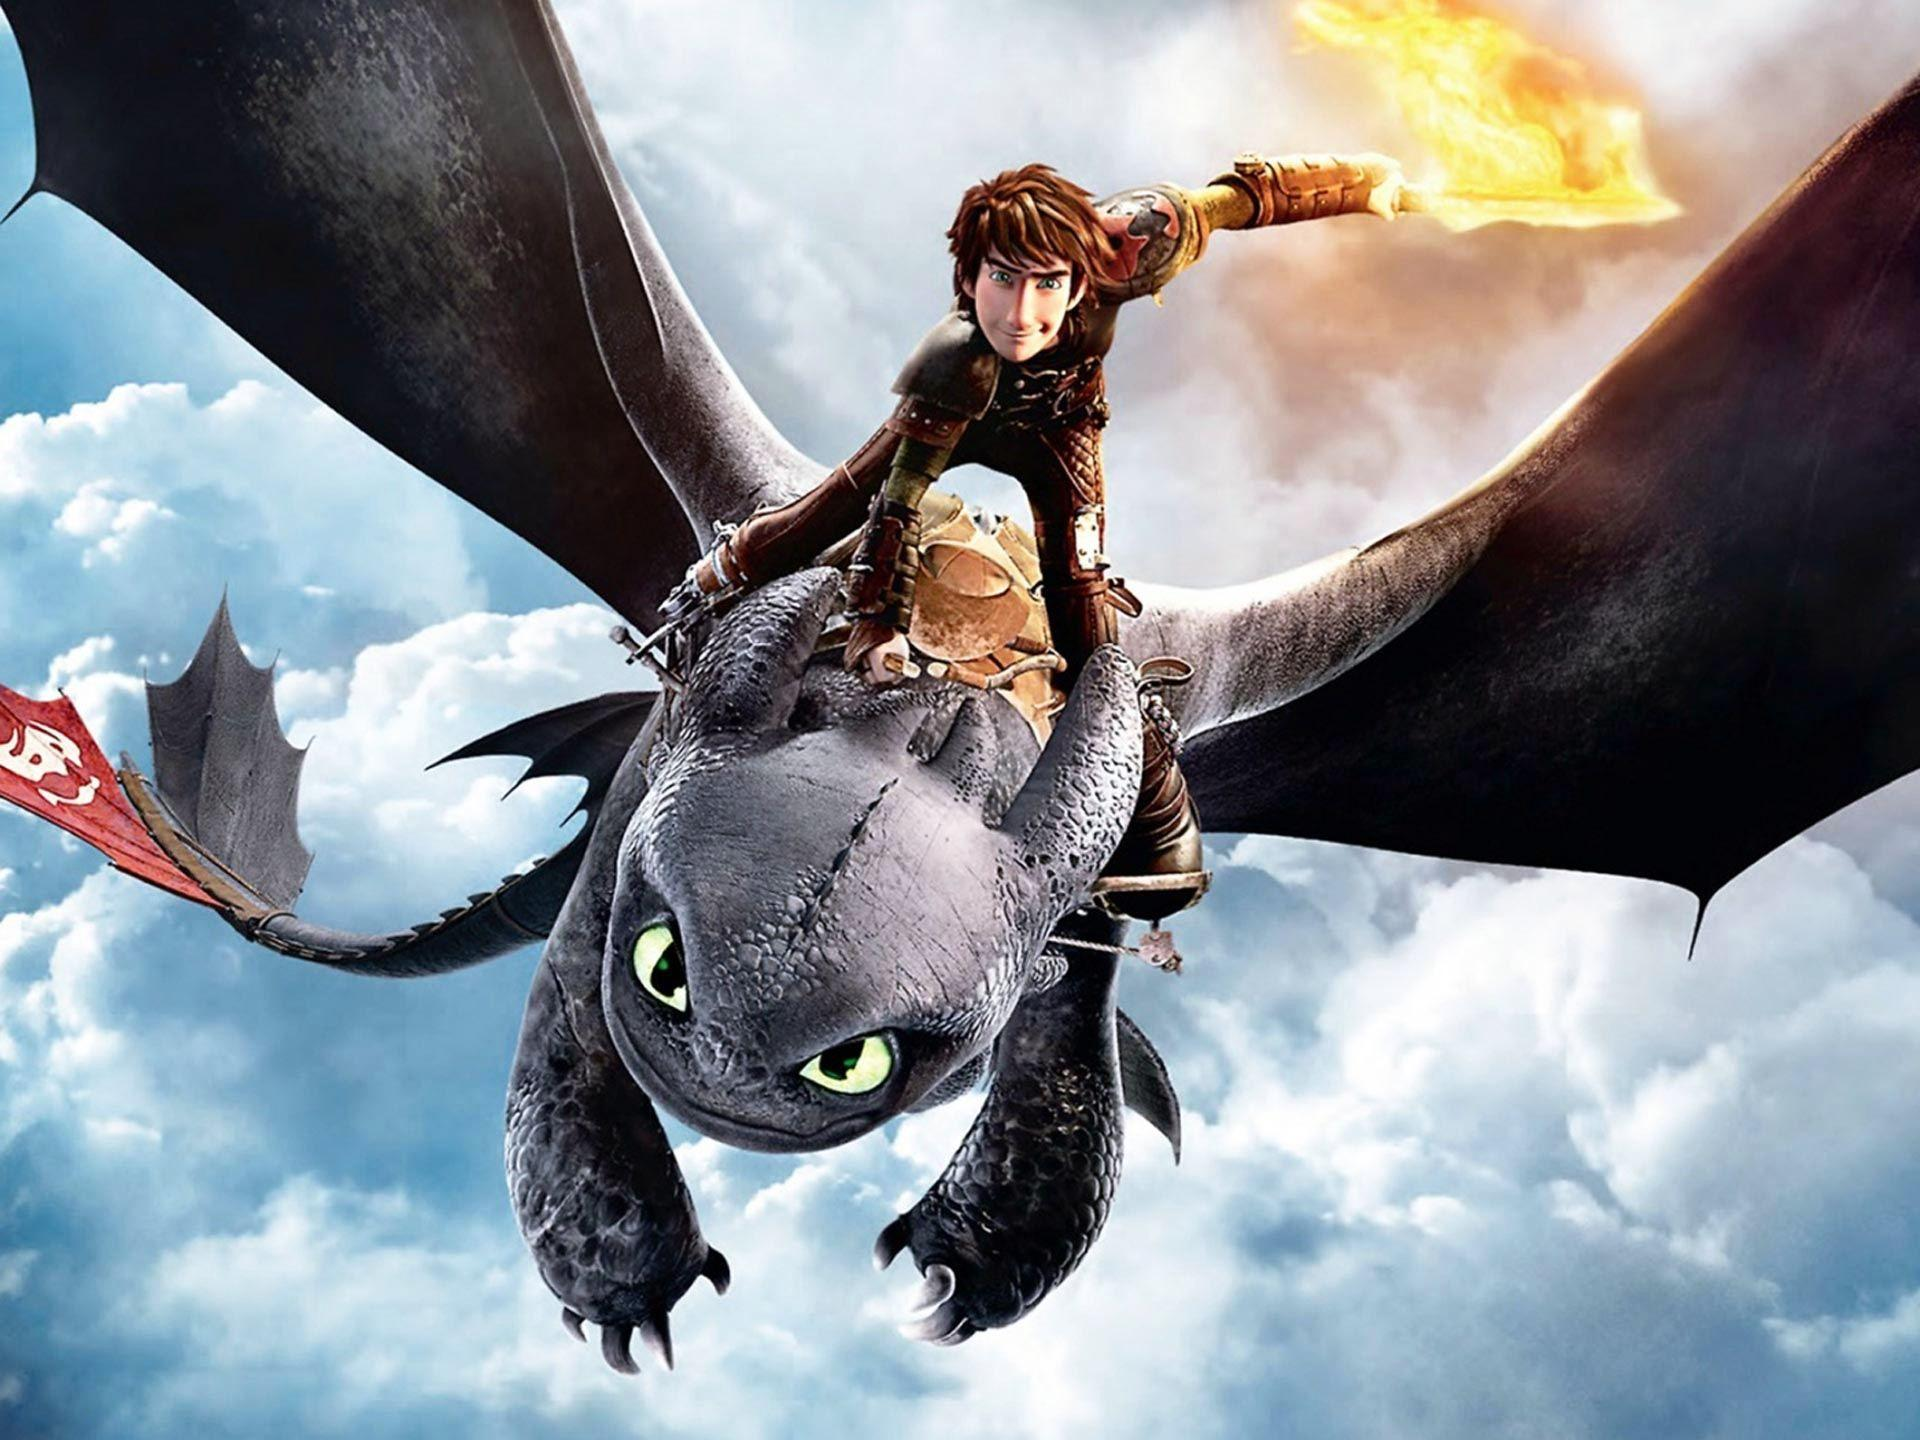 How To Train Your Dragon 3 Wallpapers